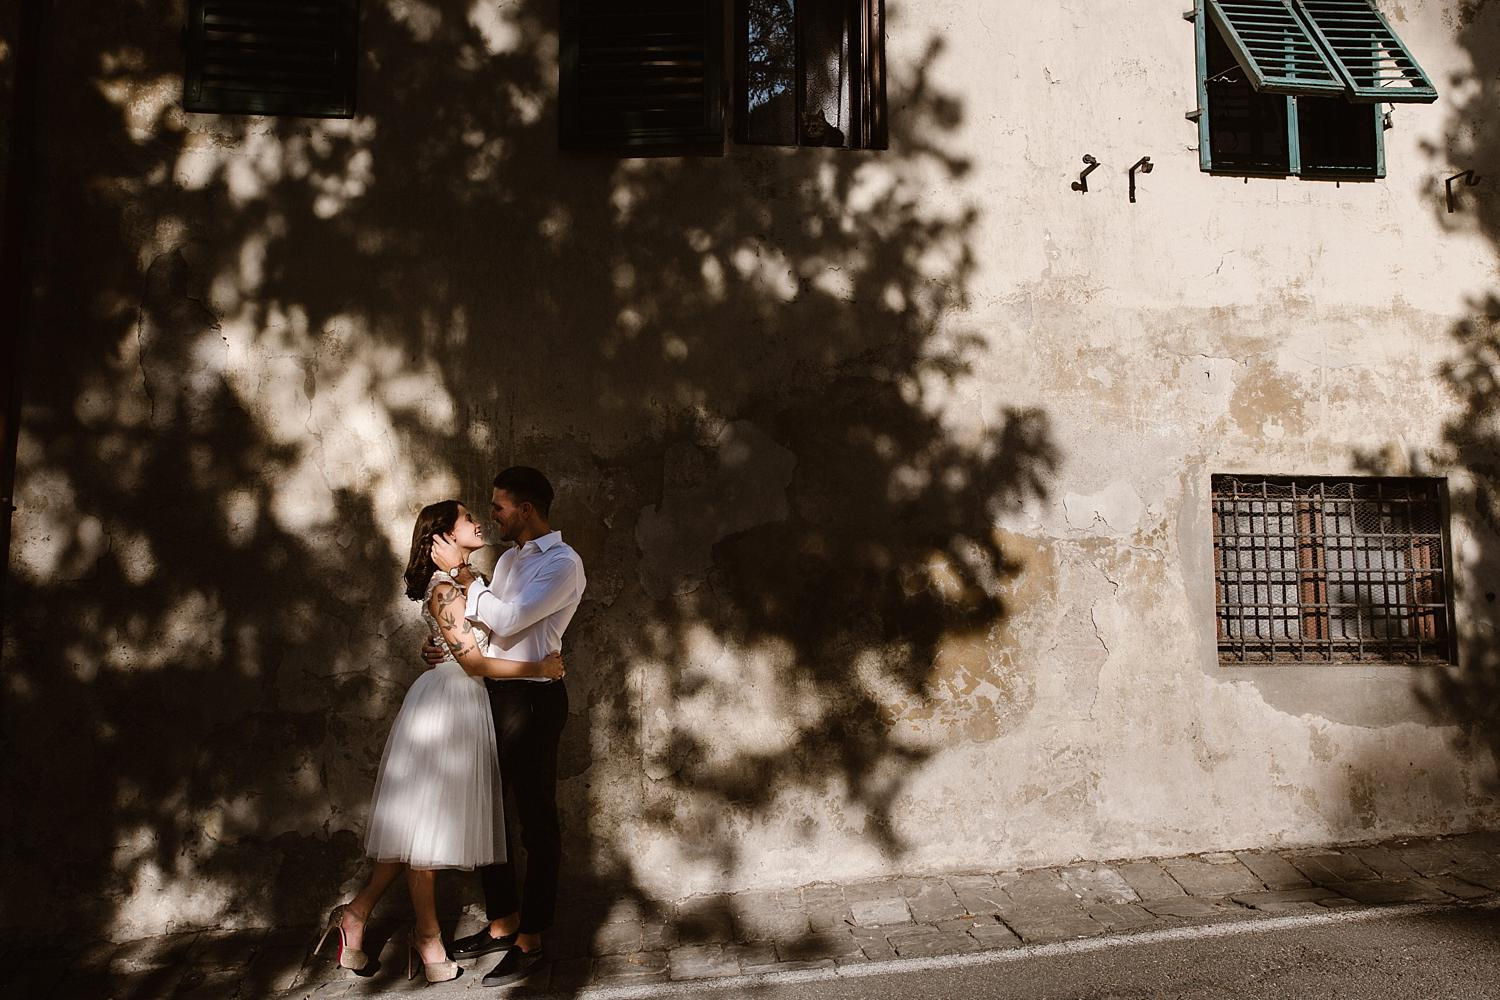 weddingphotographer florence 01 - Maddalena & Arturo - A Chic Anniversary Session in Florence